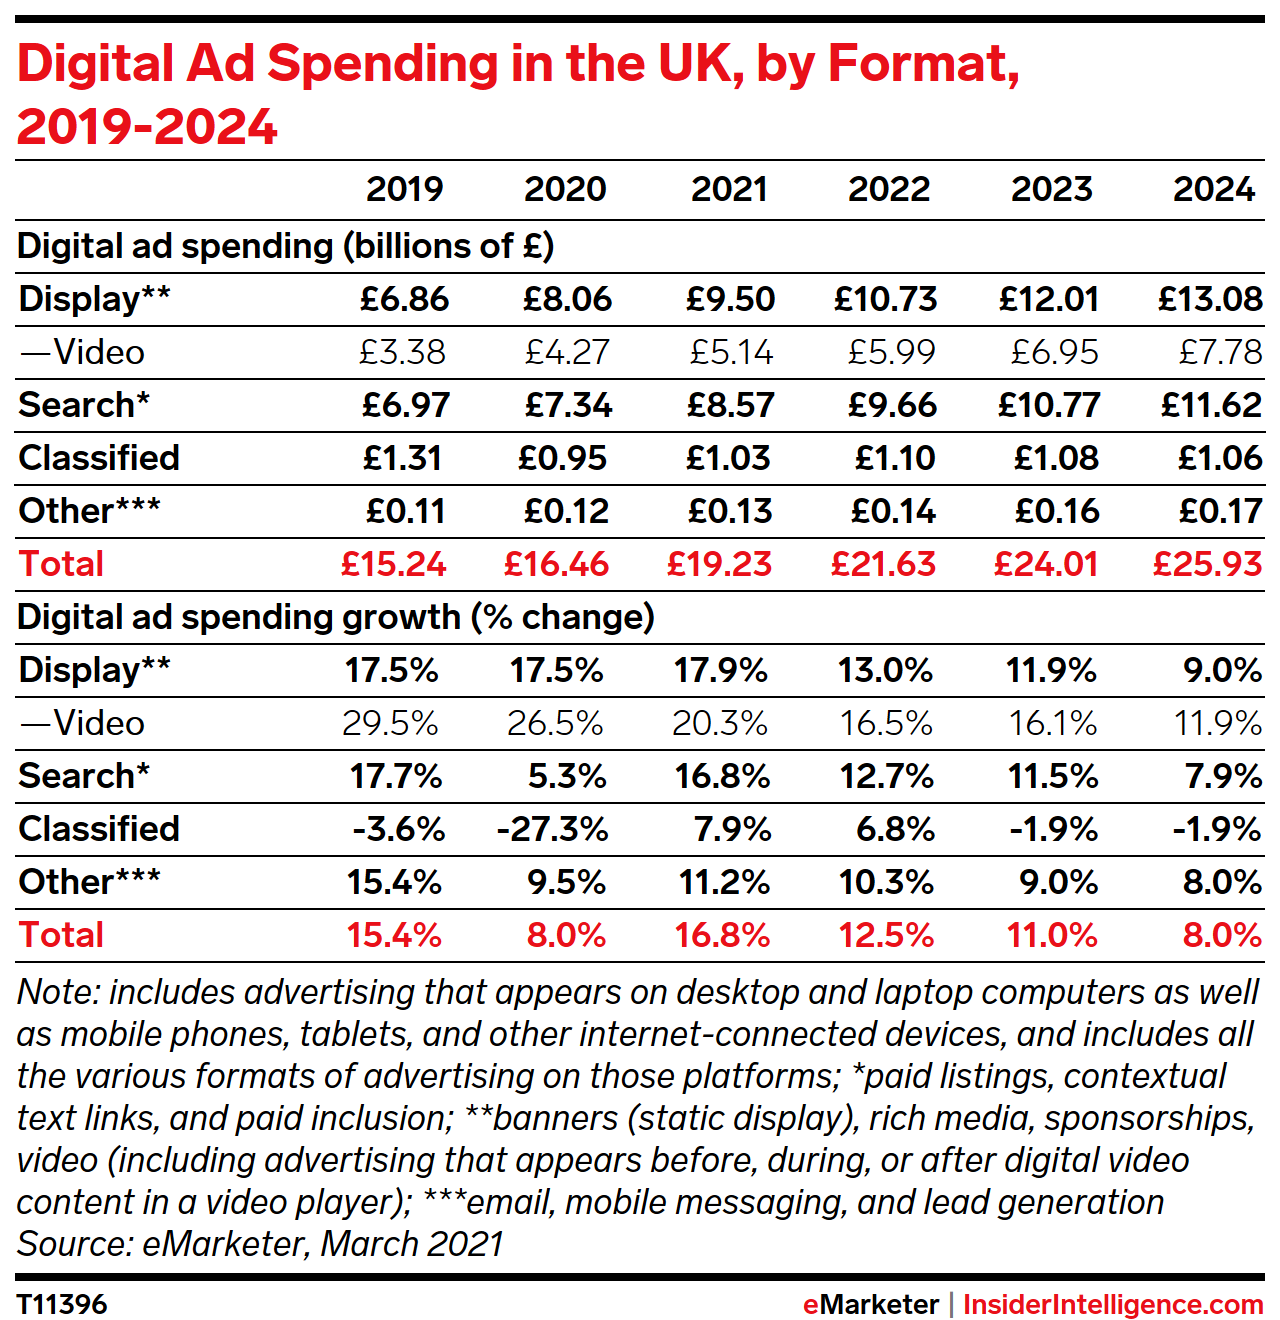 Digital Ad Spending in the UK, by Format, 2019-2024 (billions of £ and % change)